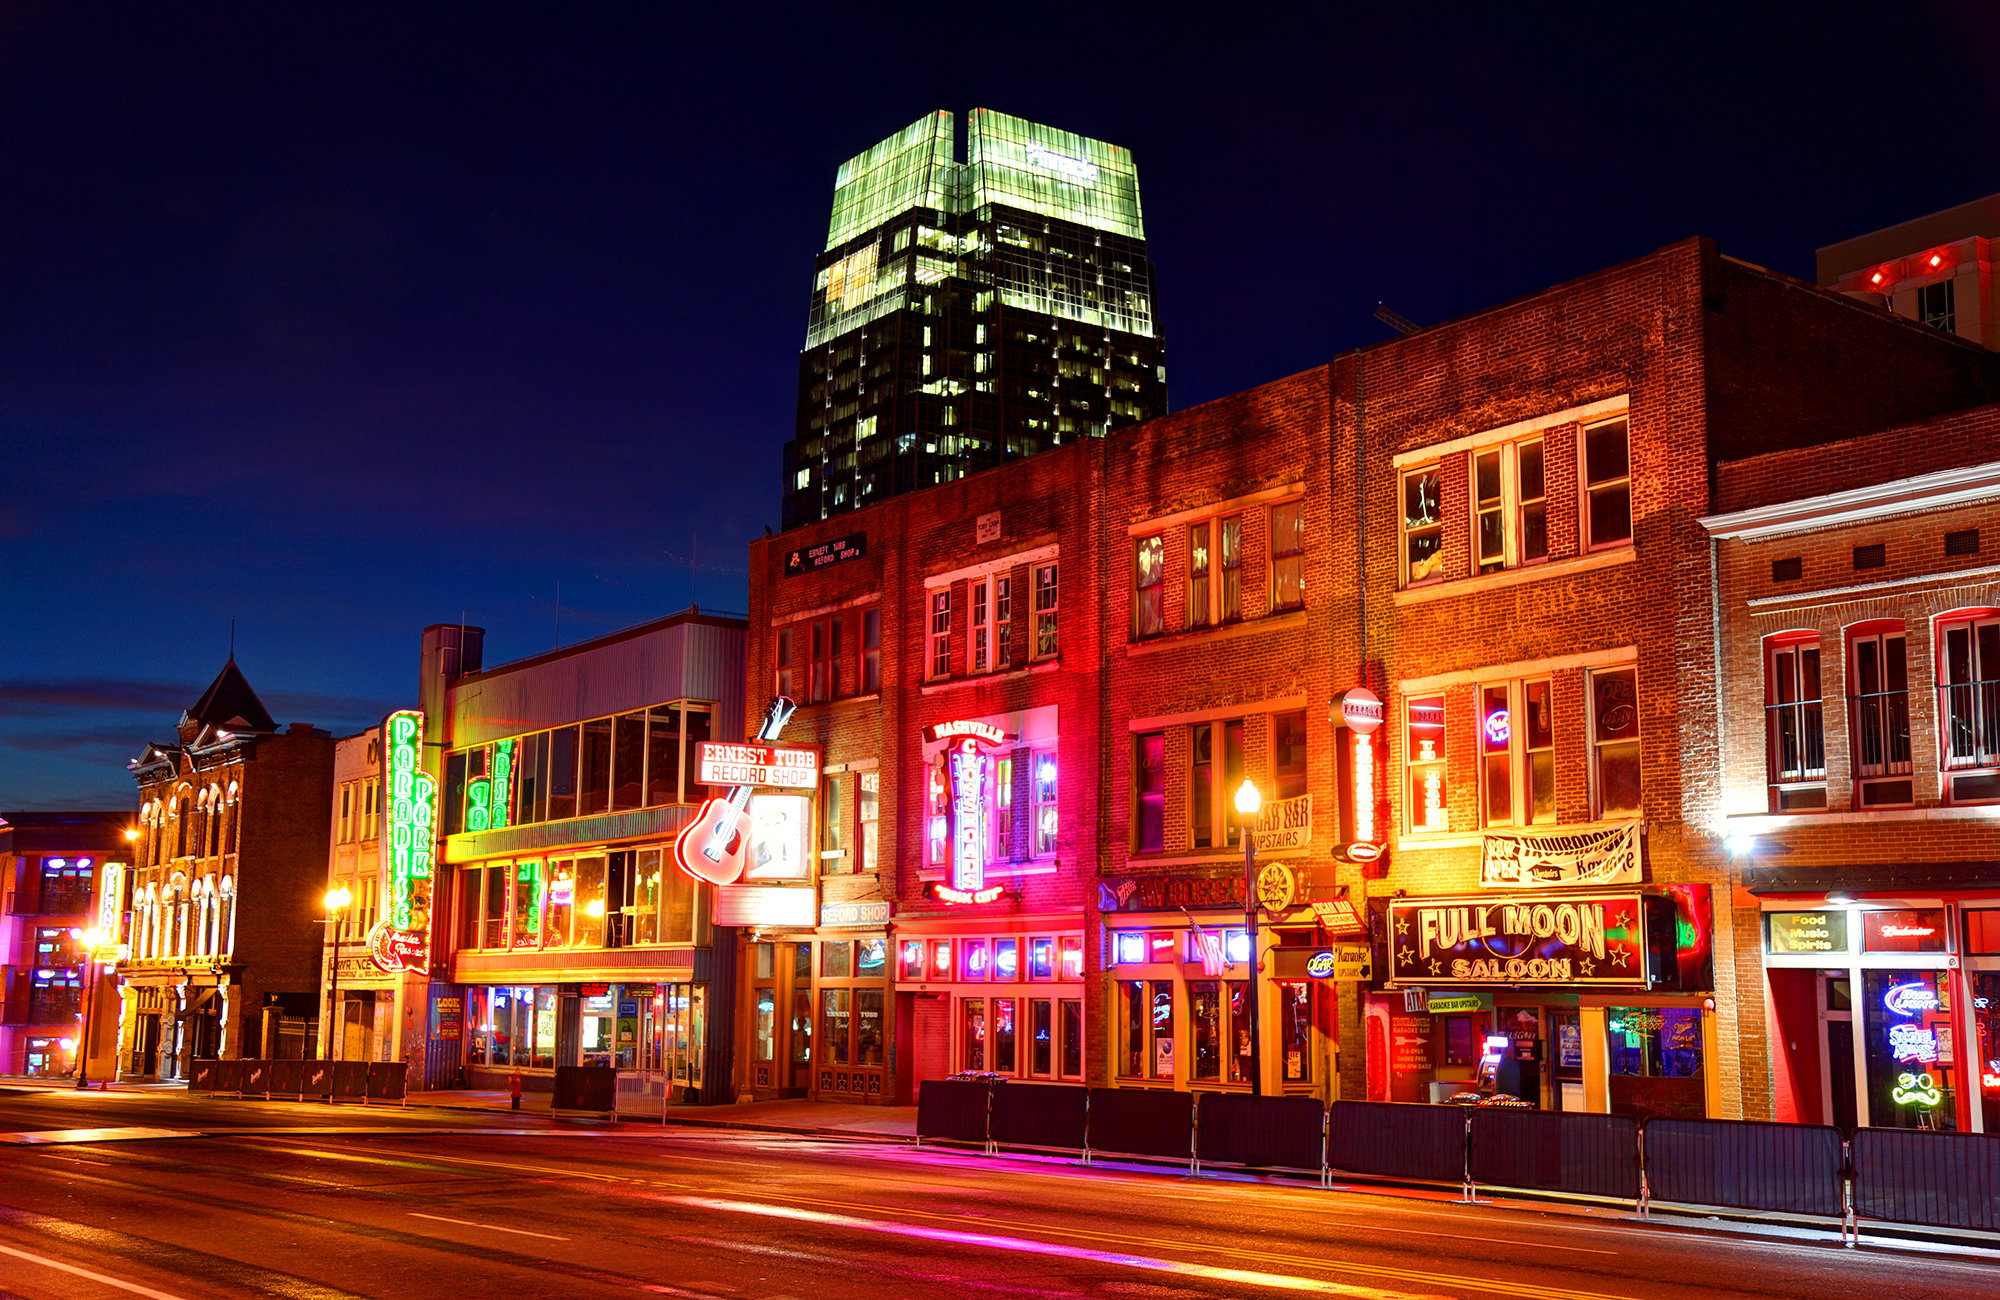 17 best things to do in nashville | u.s. news travel